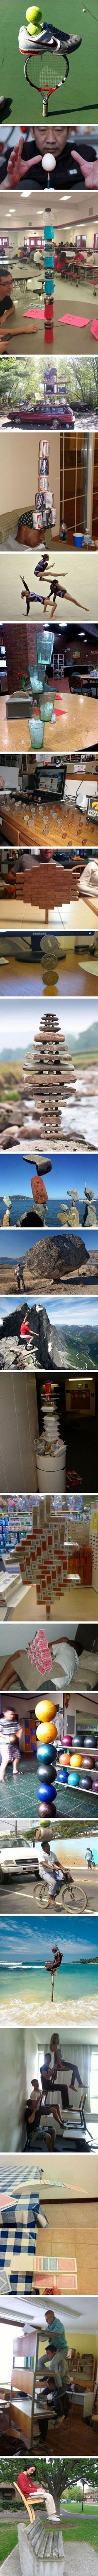 Perfectly Balanced  - funny pictures #funnypictures